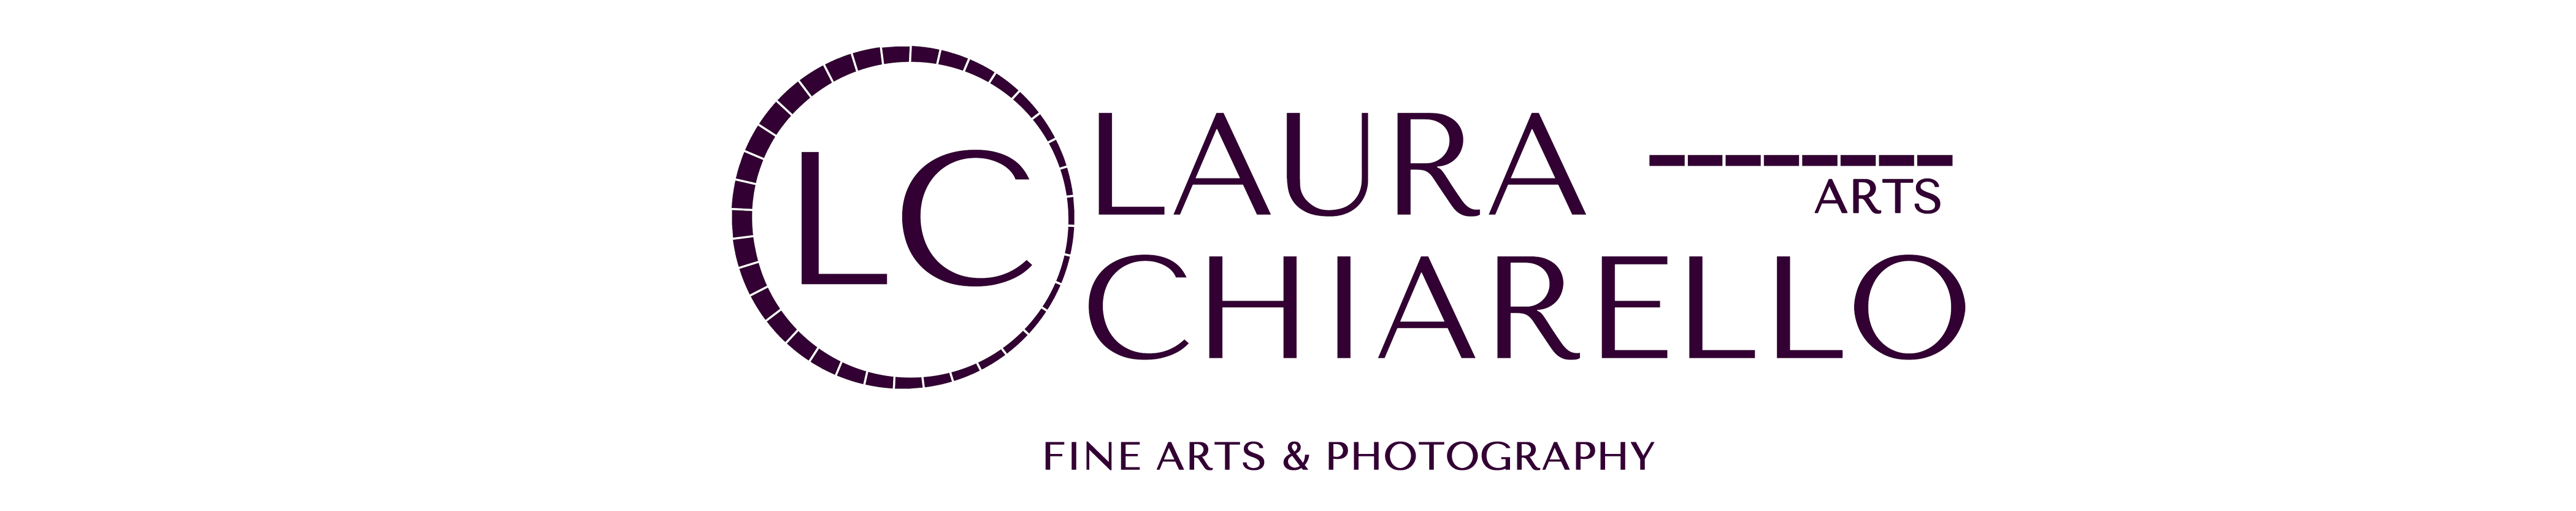 Laura Chiarello Arts -